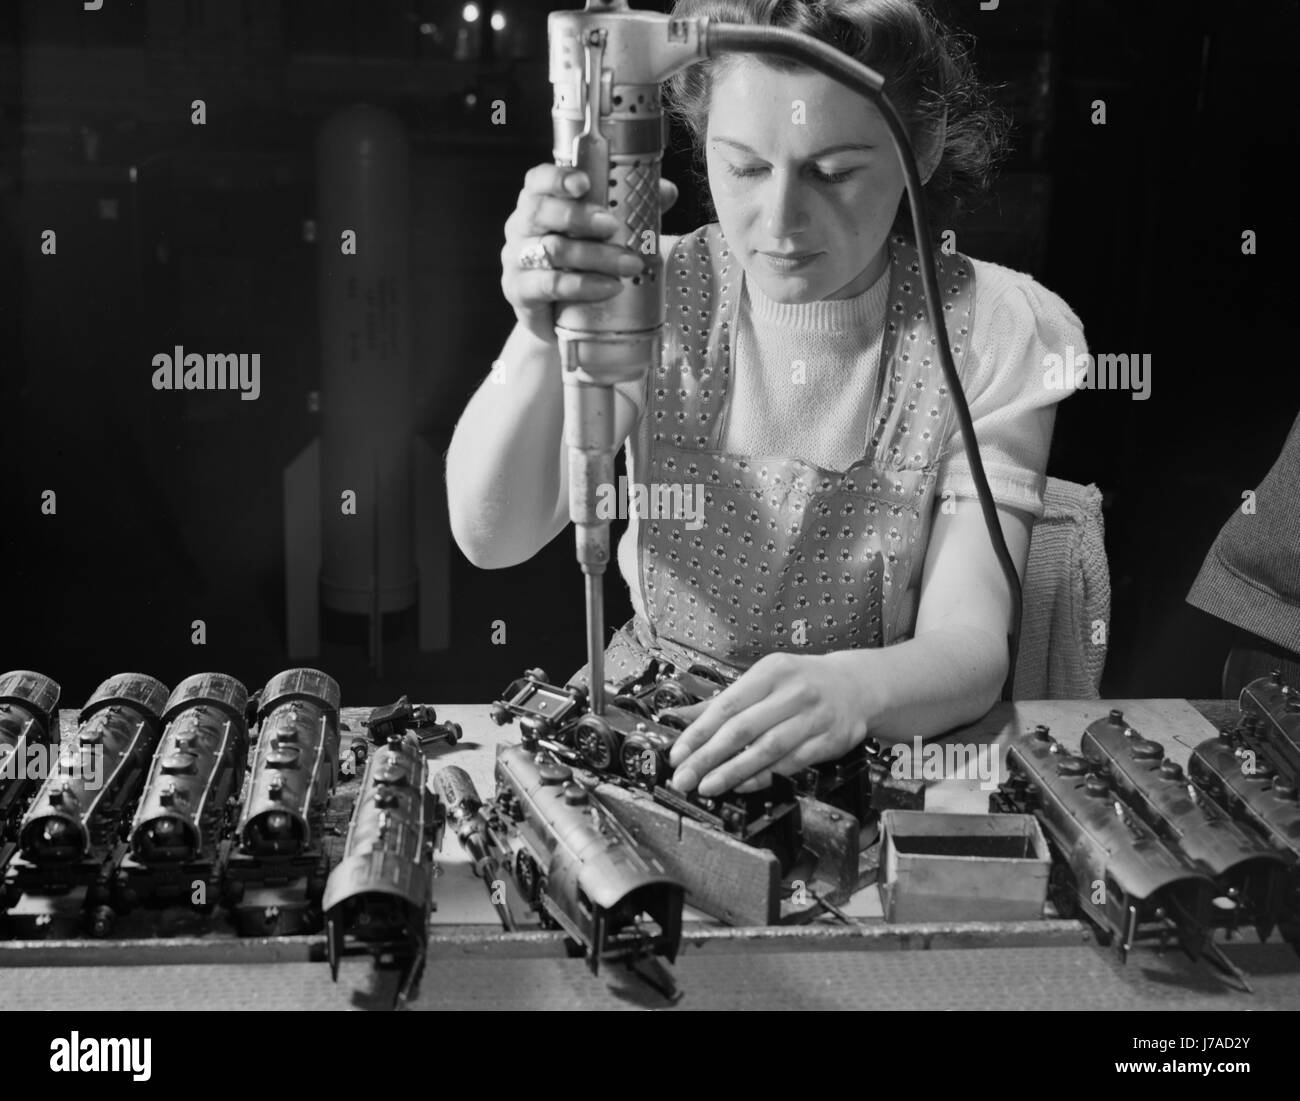 Woman worker using an electric screwdriver to assemble toy trains, 1942. Stock Photo